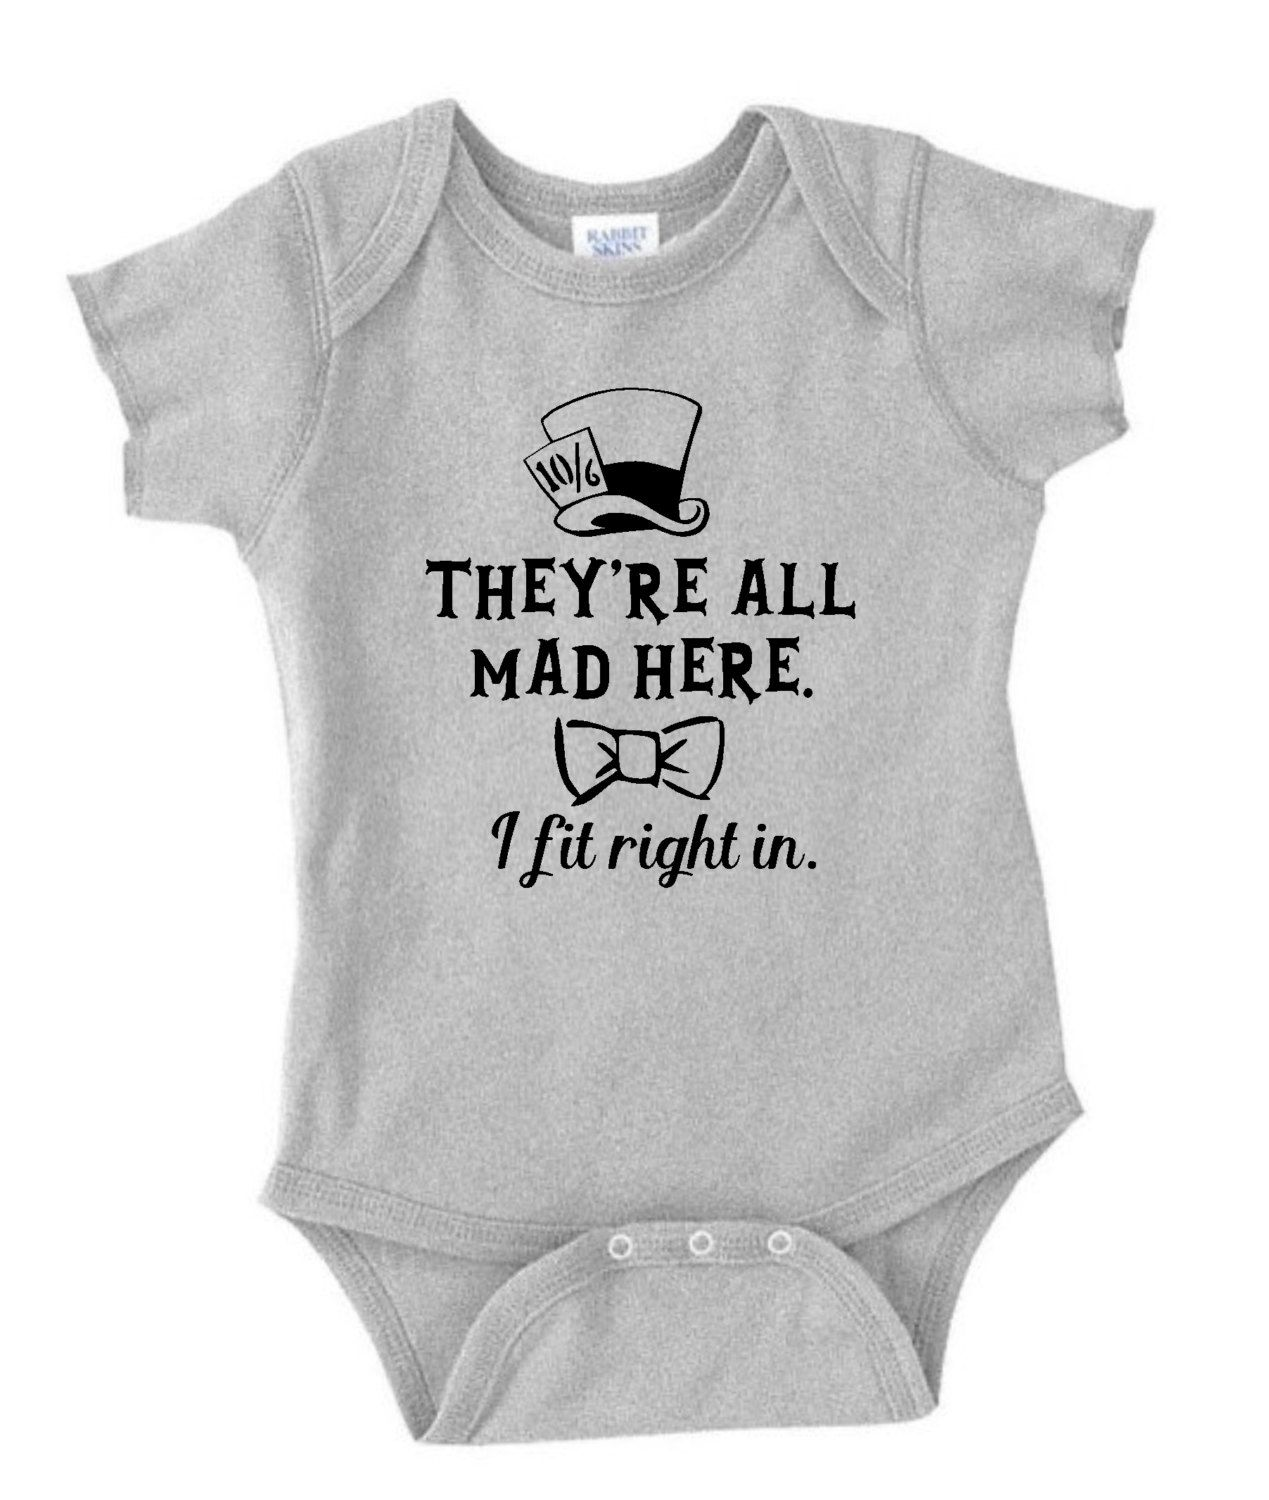 f7837b693 Alice in Wonderland inspired onesie or shirt for baby by DoodlesAndDots2 on  Etsy